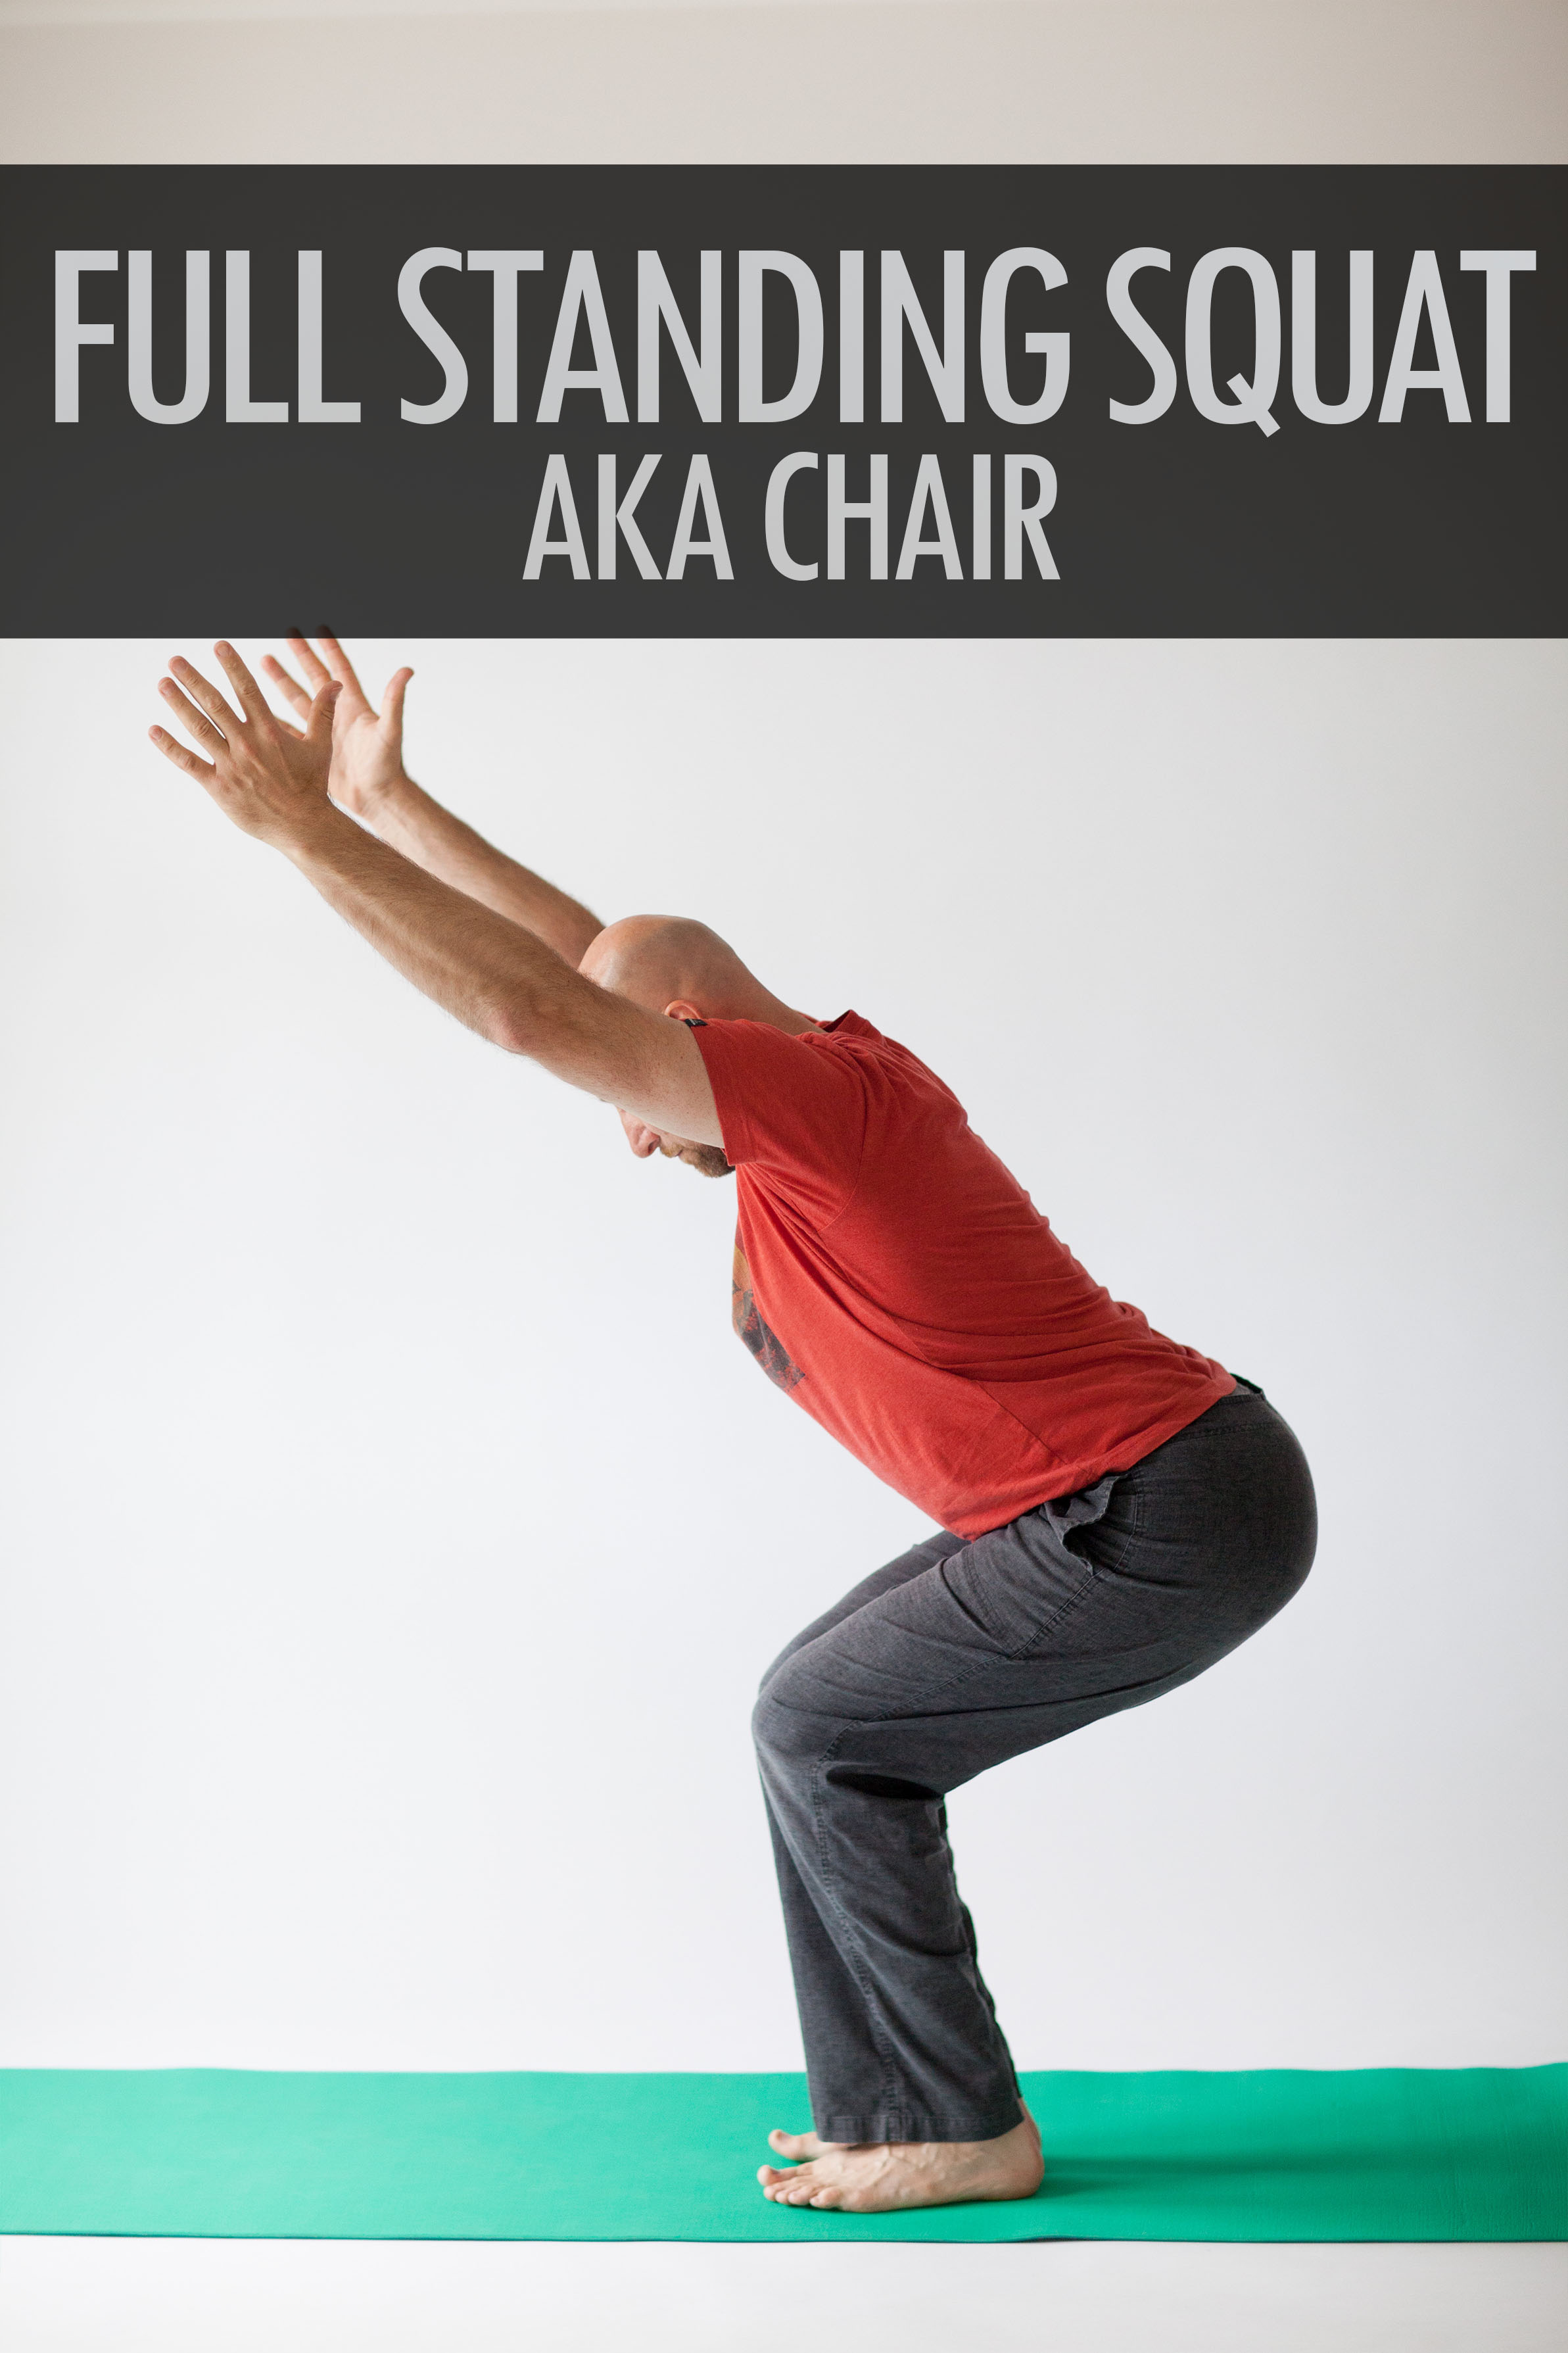 Full Standing Squat AKA Chair.jpg